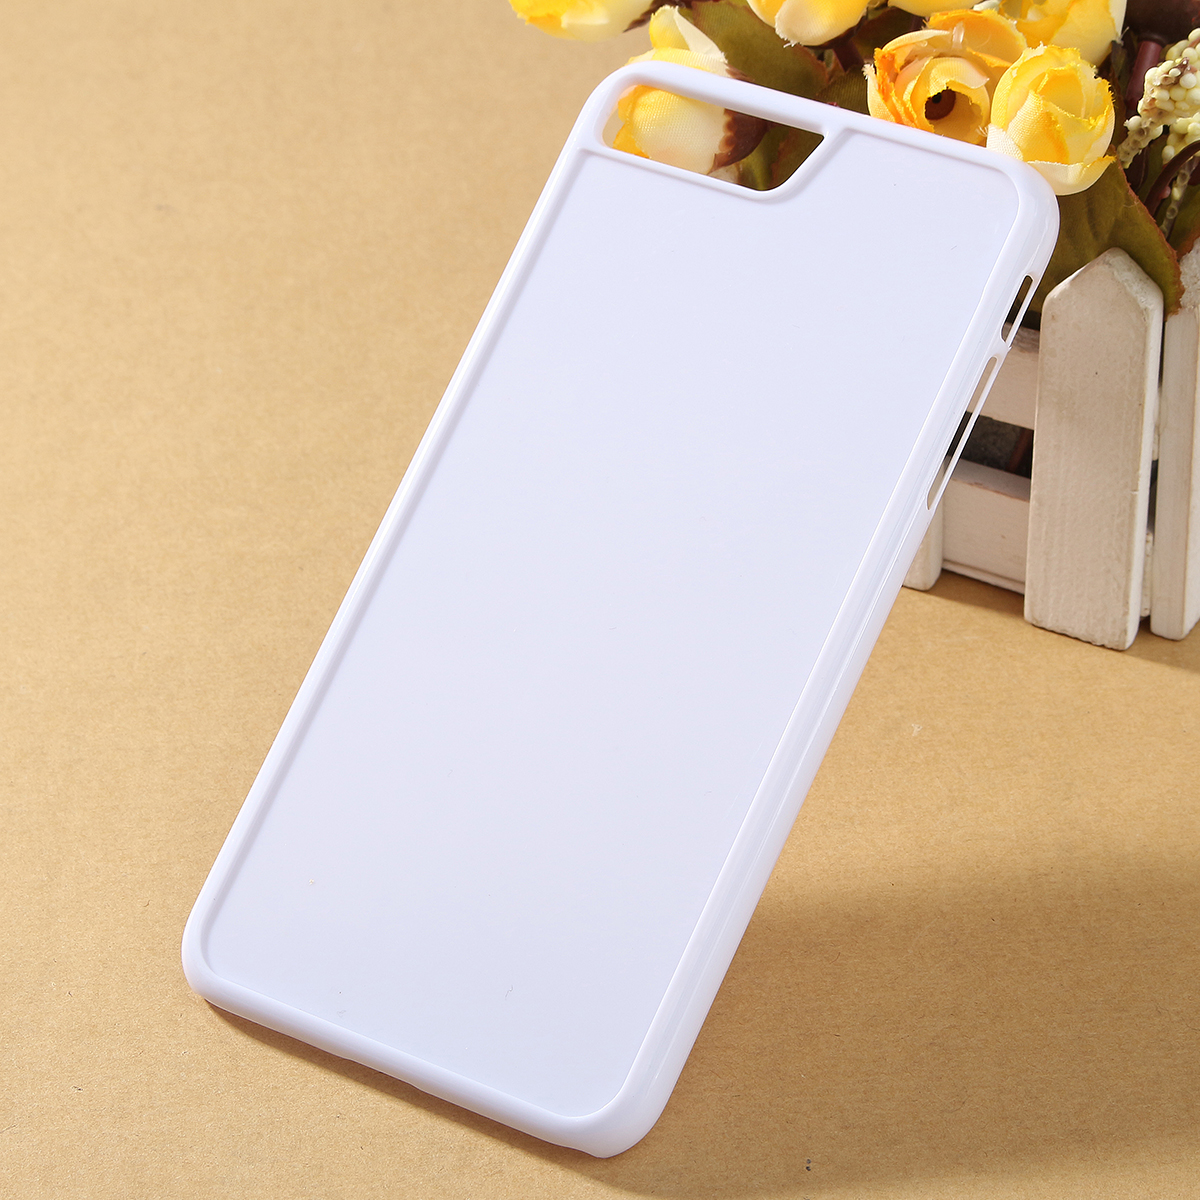 White Ultra Slim PC Case Shockproof Cover Plastic Case For iPhone 7 Plus